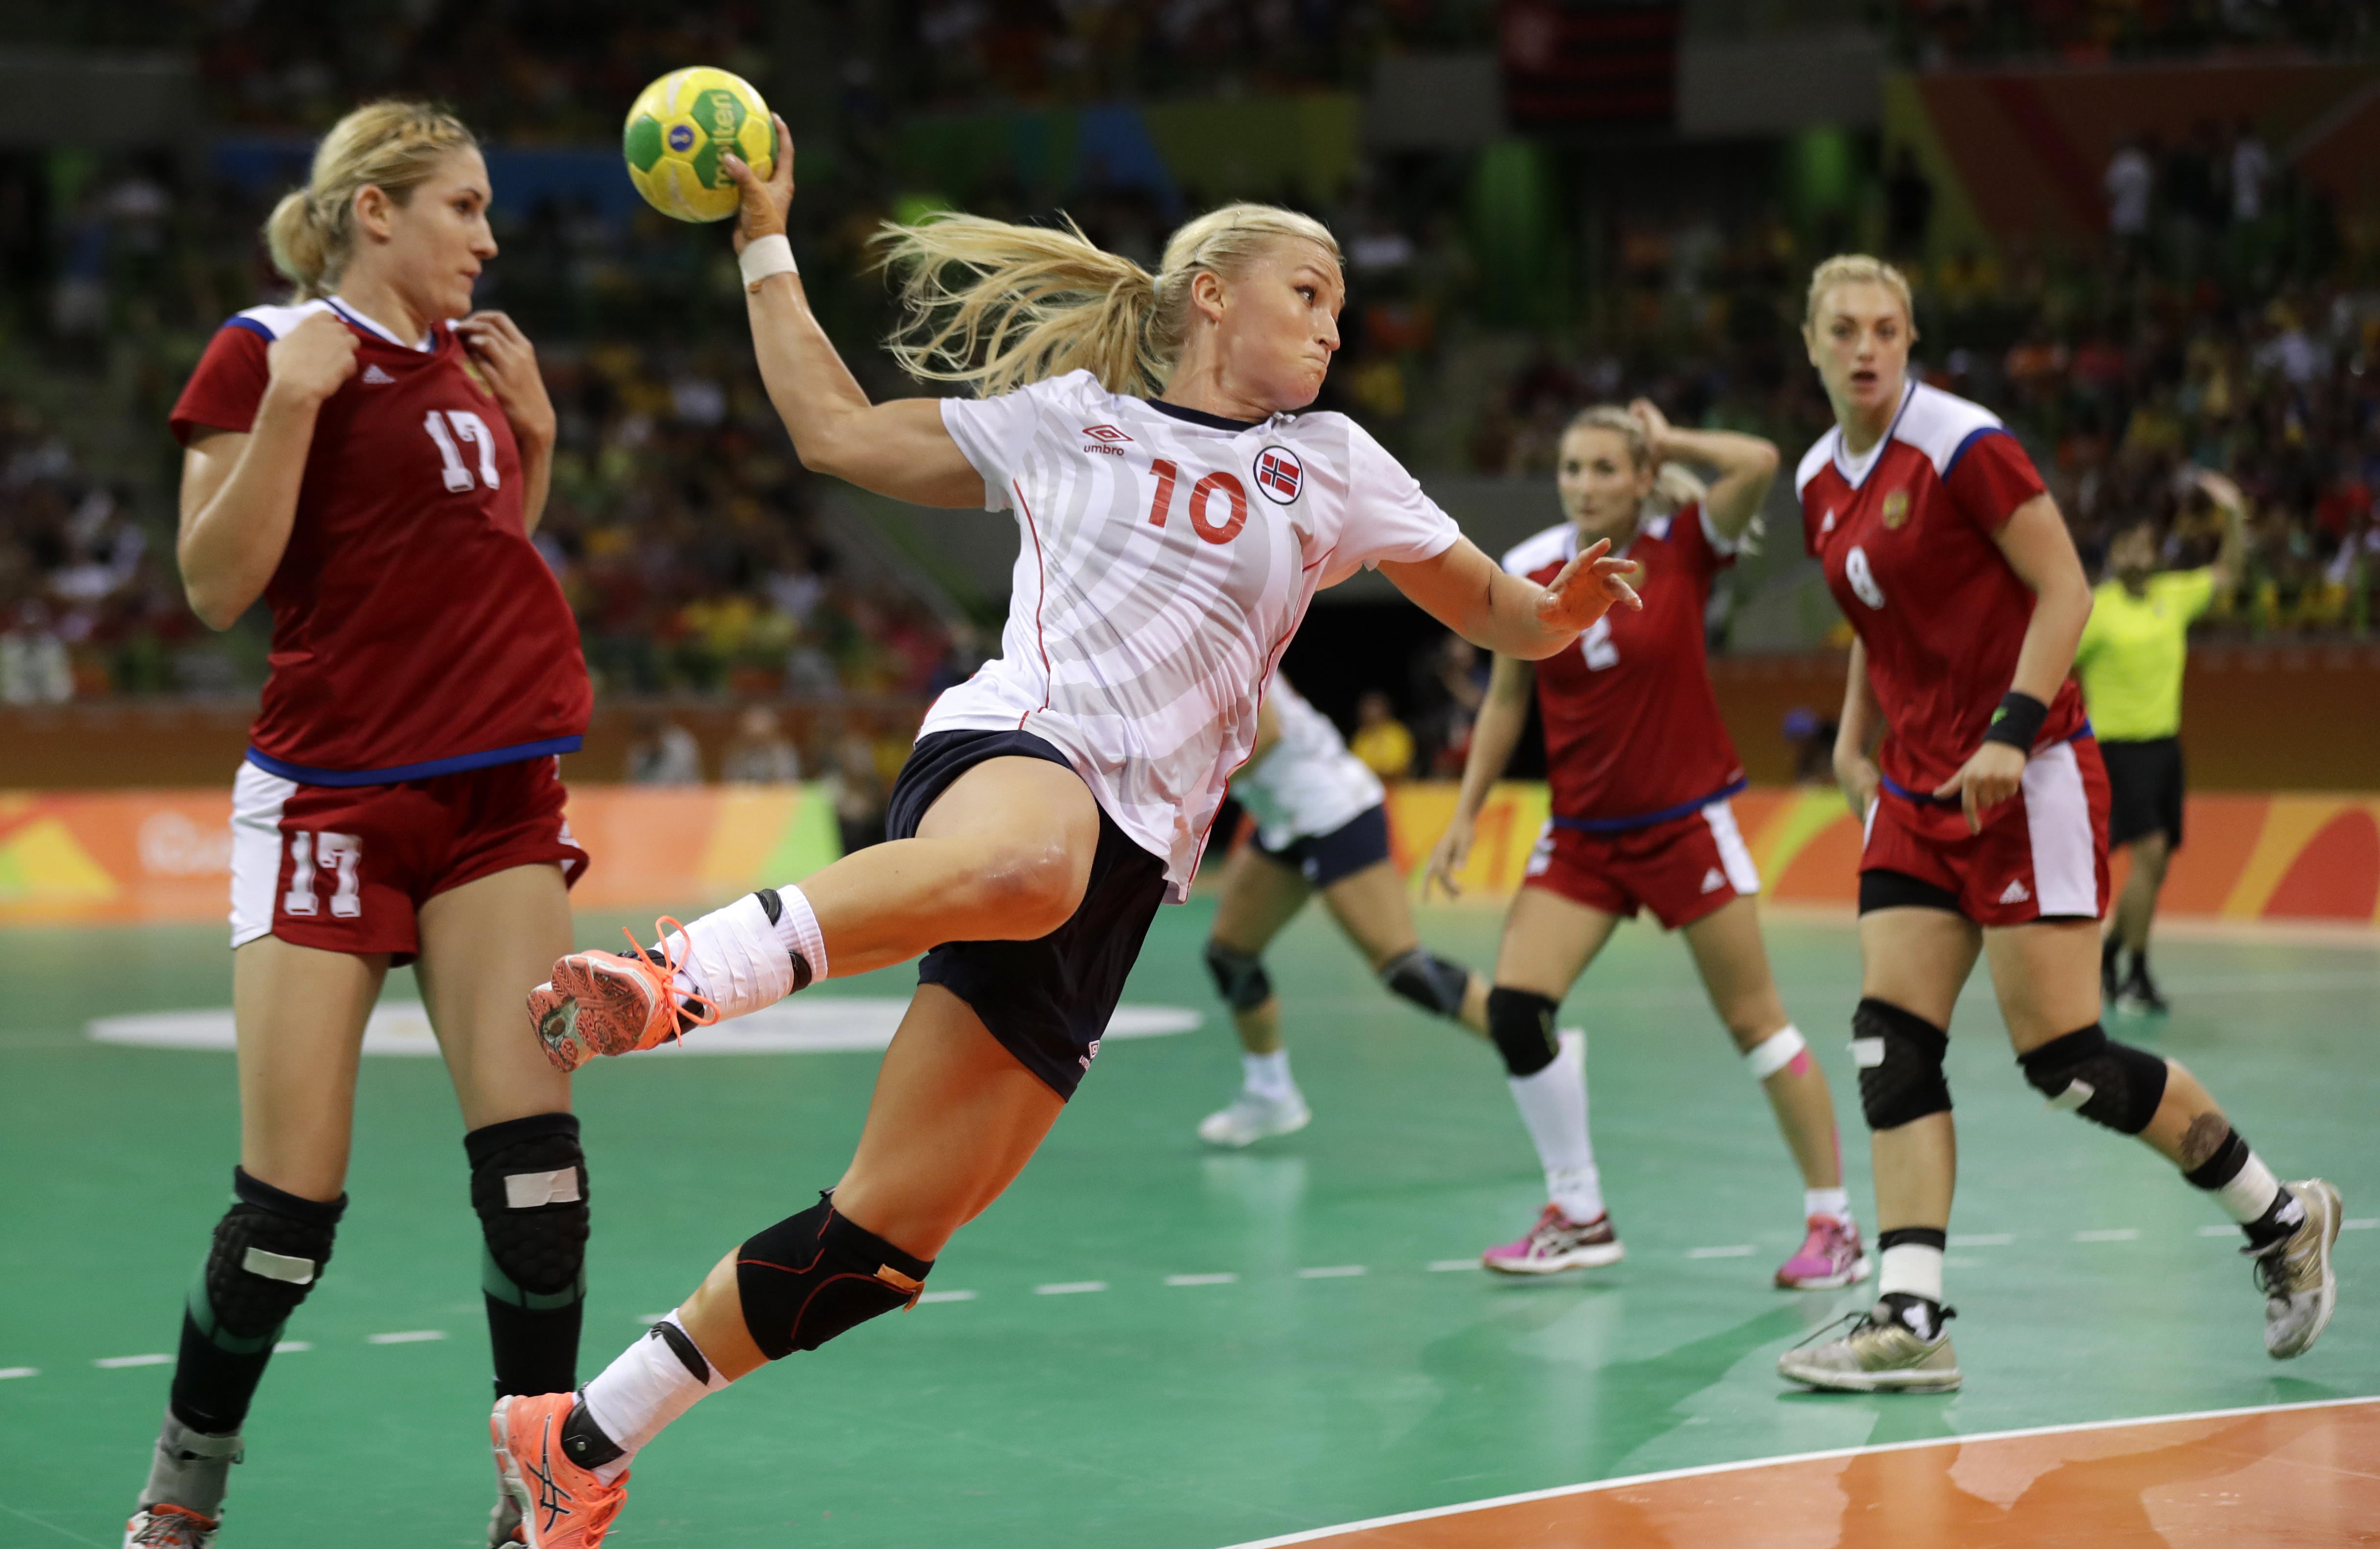 Norway's Stine Bredal Oftedal tries to score past Russia's Vladlena Bobrovnikova, left, during the women's semifinal handball match between Norway and Russia at the 2016 Summer Olympics in Rio de Janeiro, Brazil, Thursday, Aug. 18, 2016. (AP Photo/Ben Cur